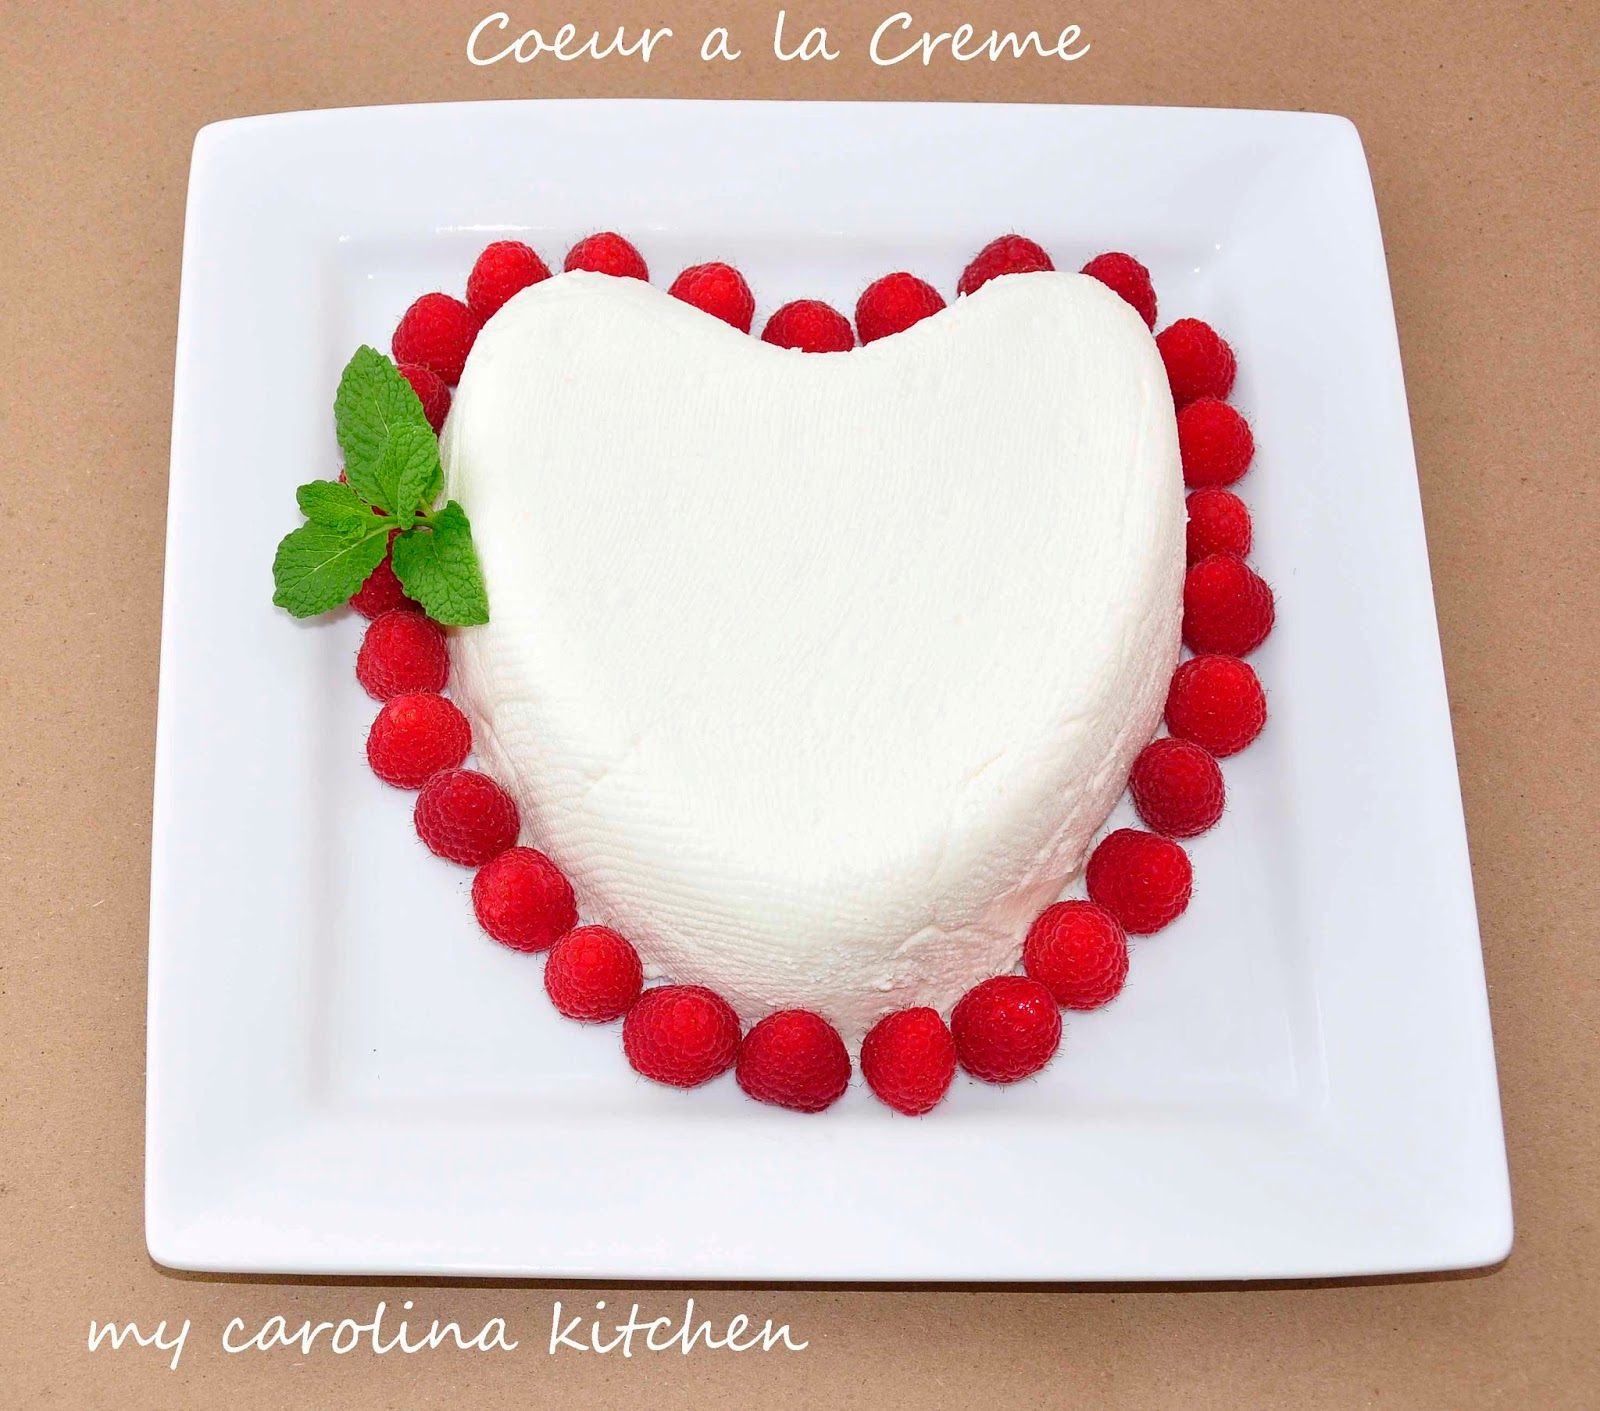 My Carolina Kitchen: Heart Shaped French Coeur a la Crème ...